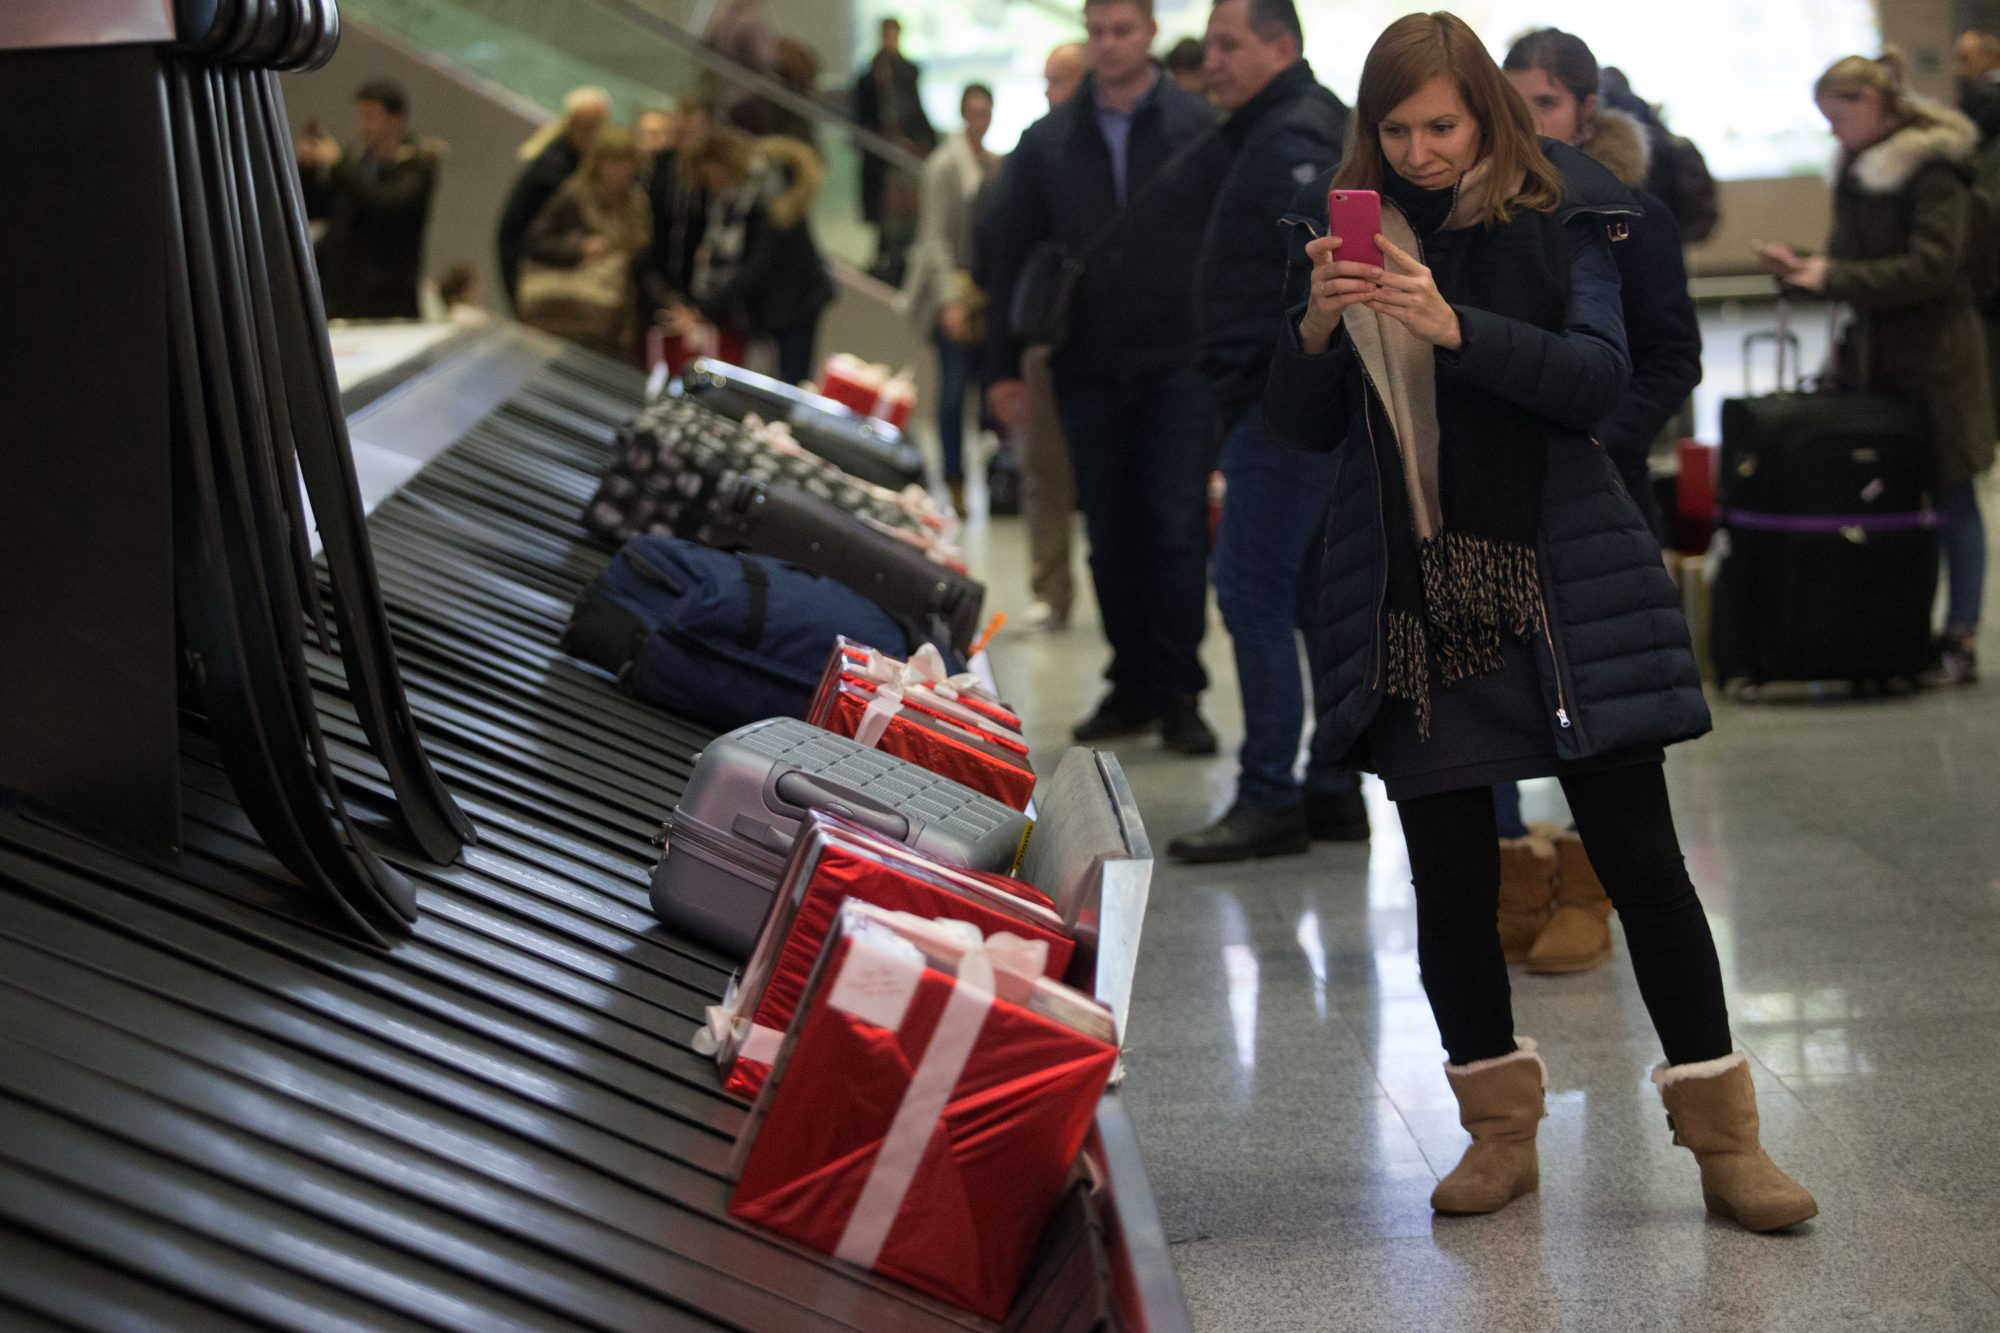 TSA Rules for Wrapped Gifts: 3 Tips for Travelers